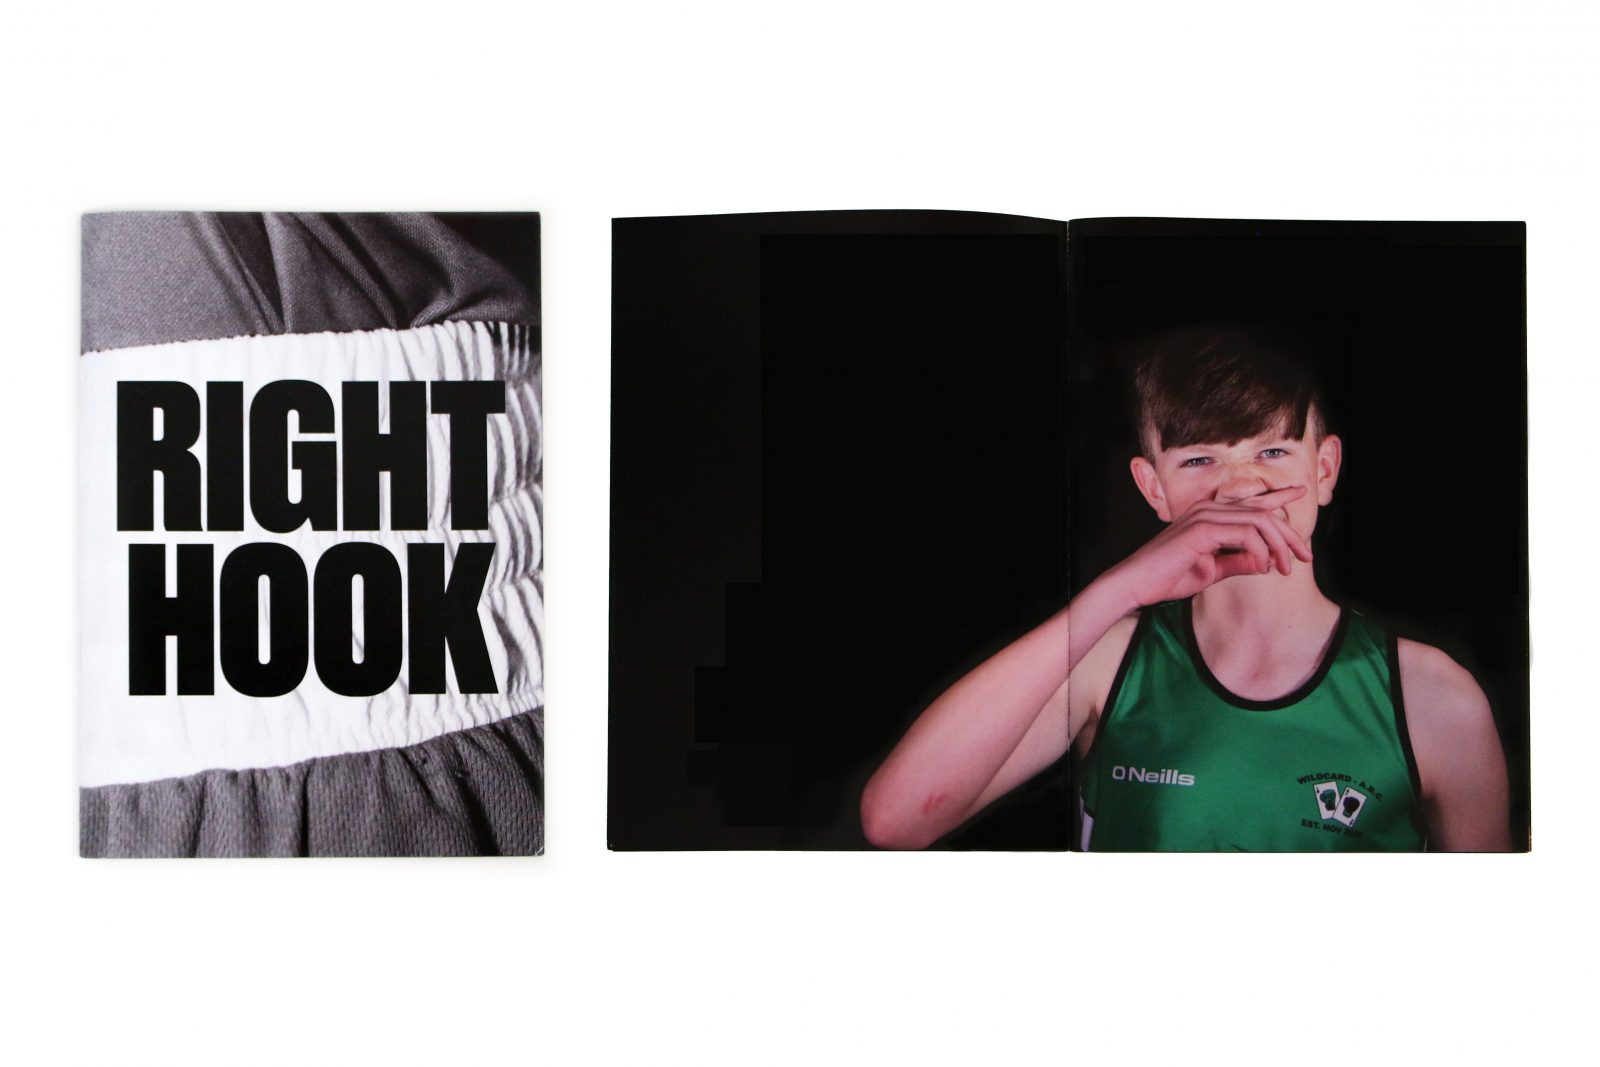 A black and white image reading 'RIGHT HOOK' in black text. An image of a young person wearing a green sports vest and wiping their mouth with their hand.